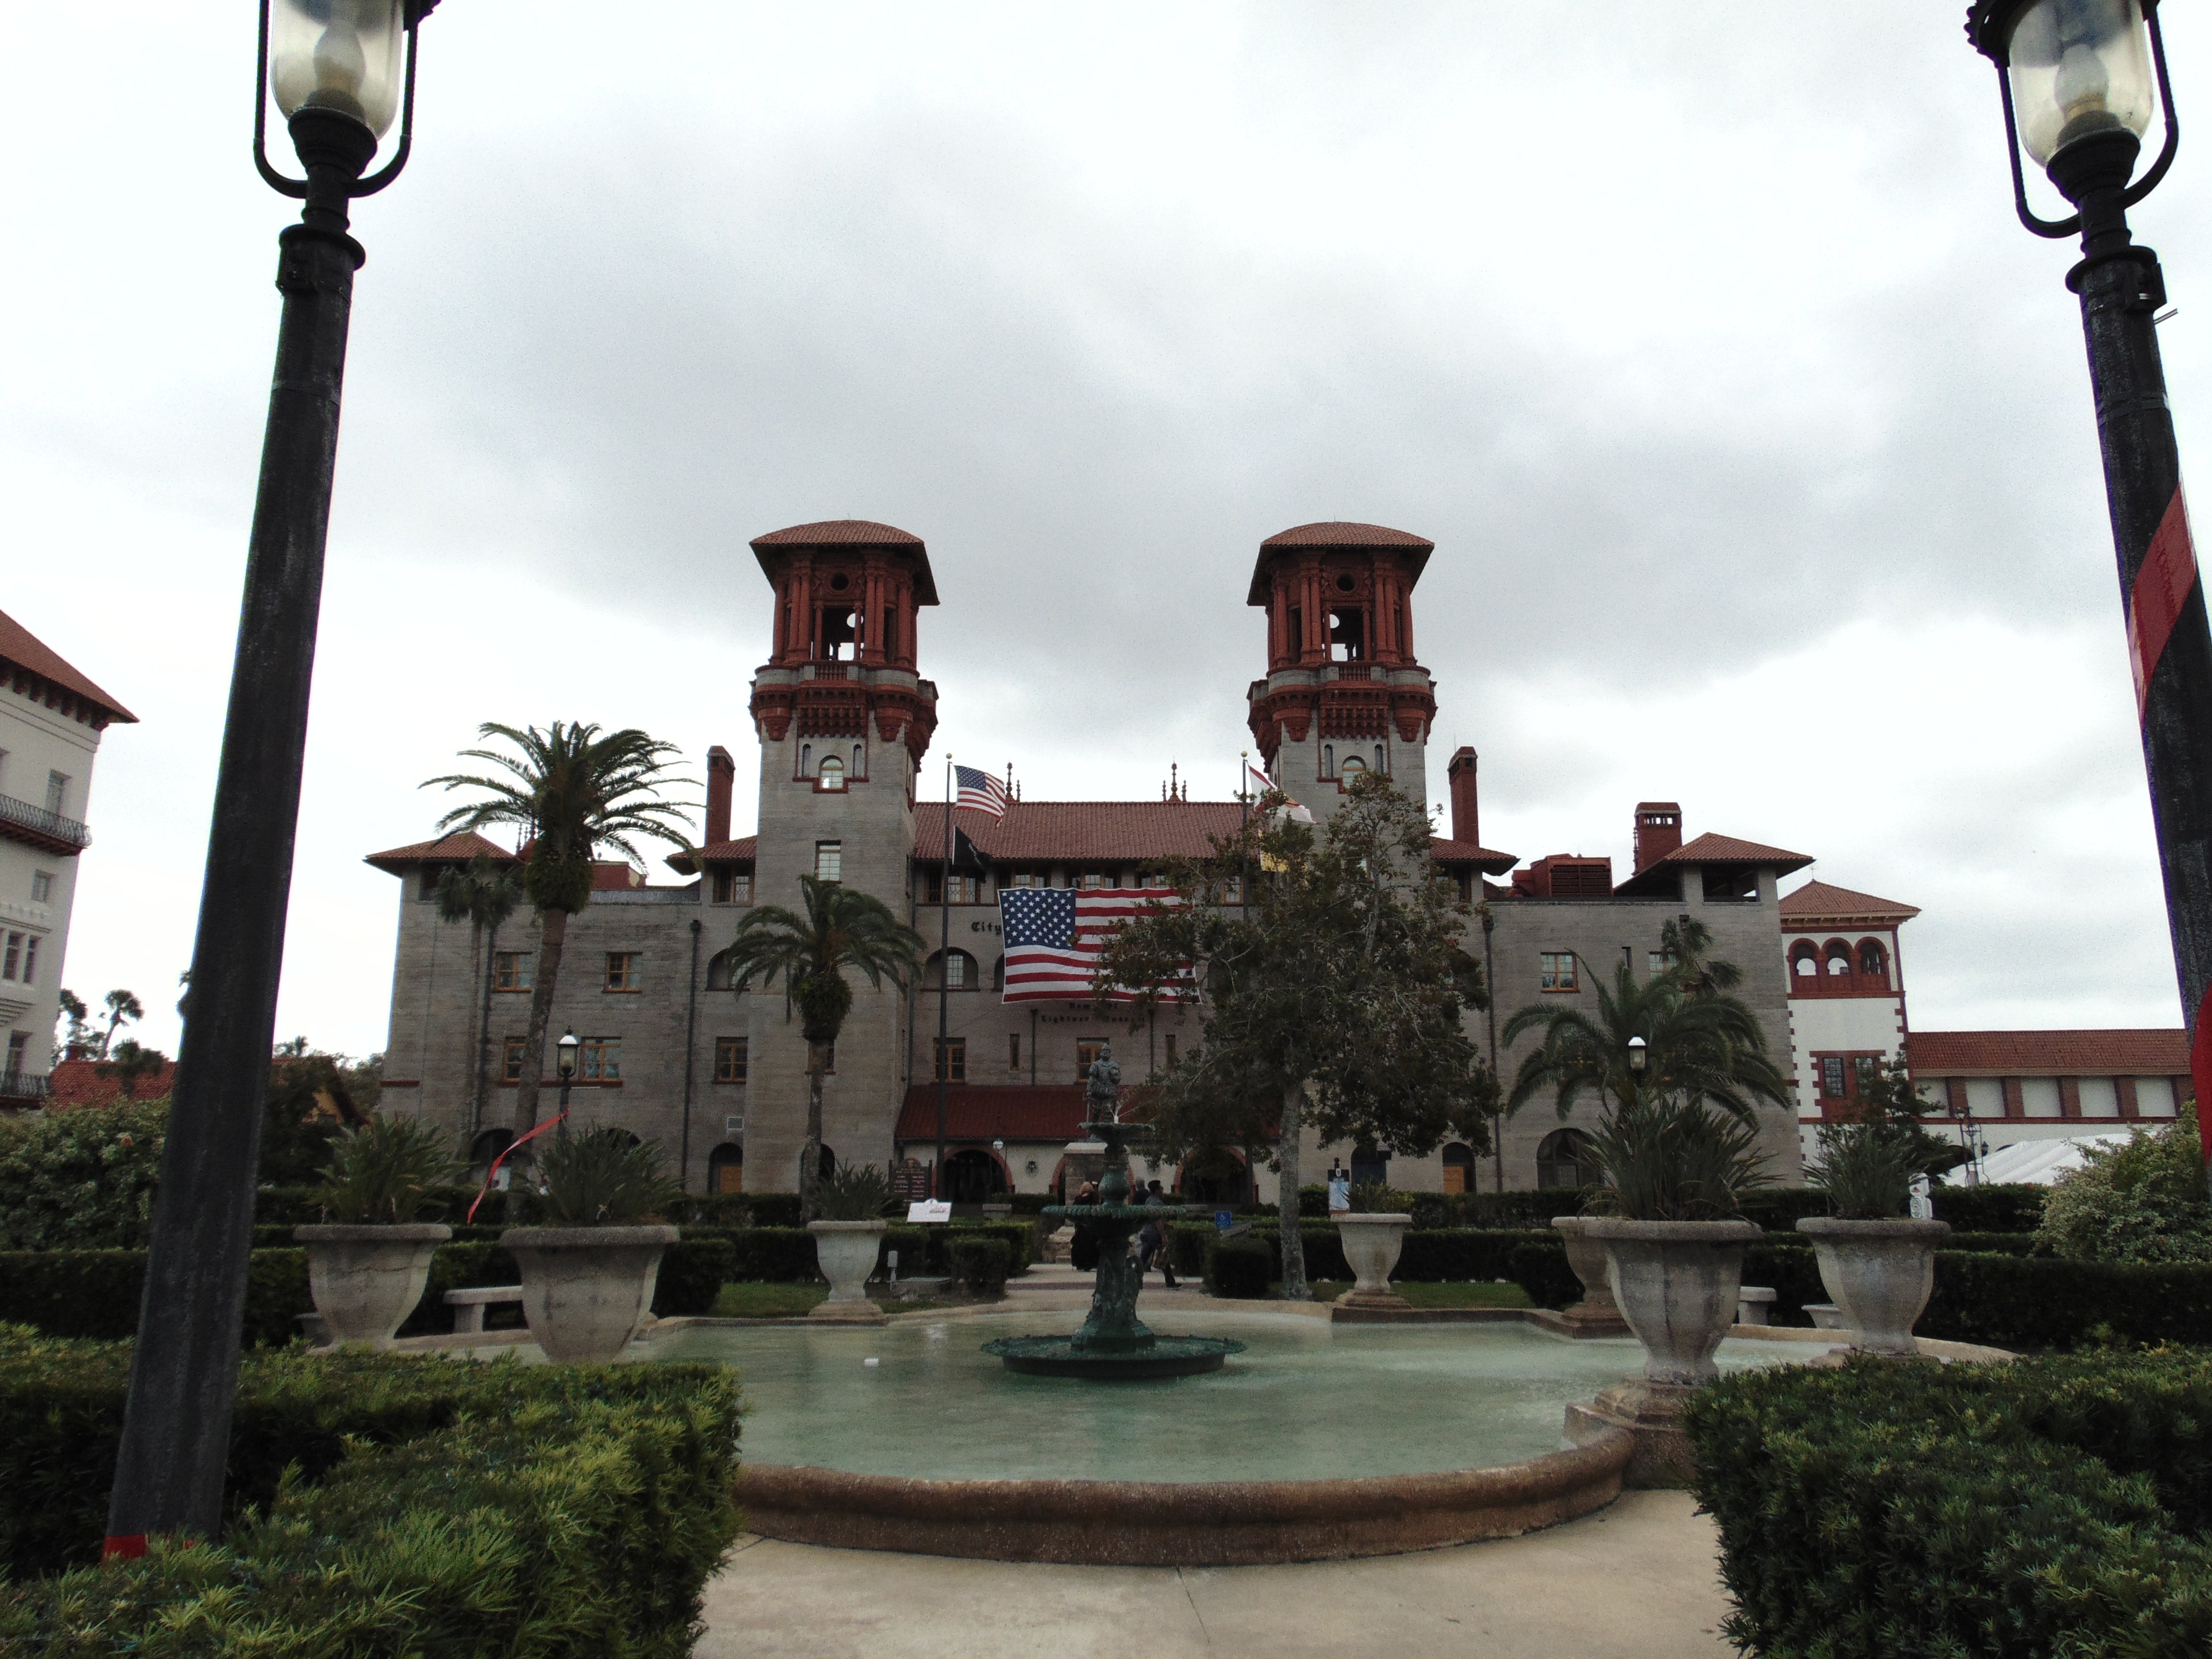 The front of the Lightner Museum.